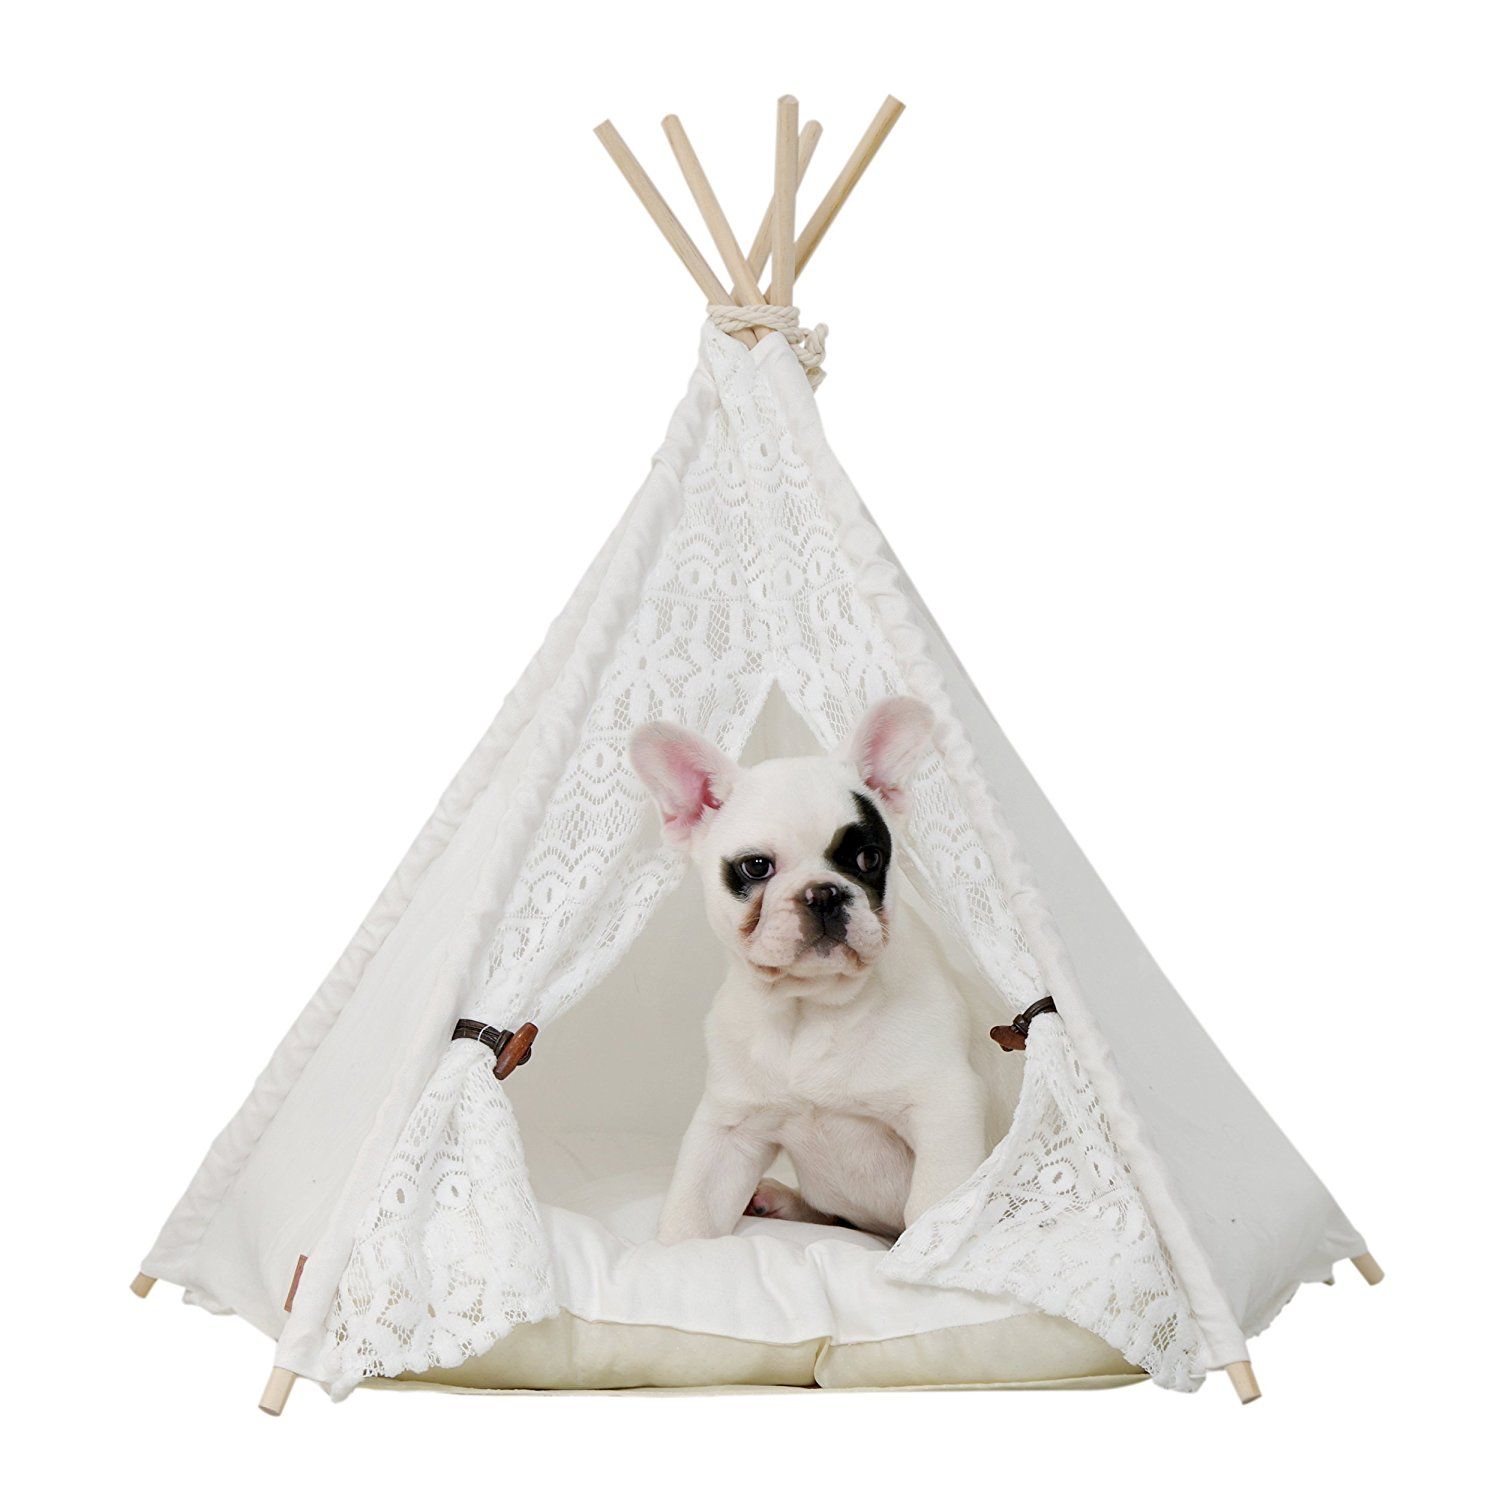 ... little dove Pet Teepee Dog u0026&; Cat Bed - Portable Dog Tents u0026&; Pet  sc 1 st  Walmart & little dove Pet Teepee Dog u0026amp; Cat Bed - Portable Dog Tents u0026amp ...